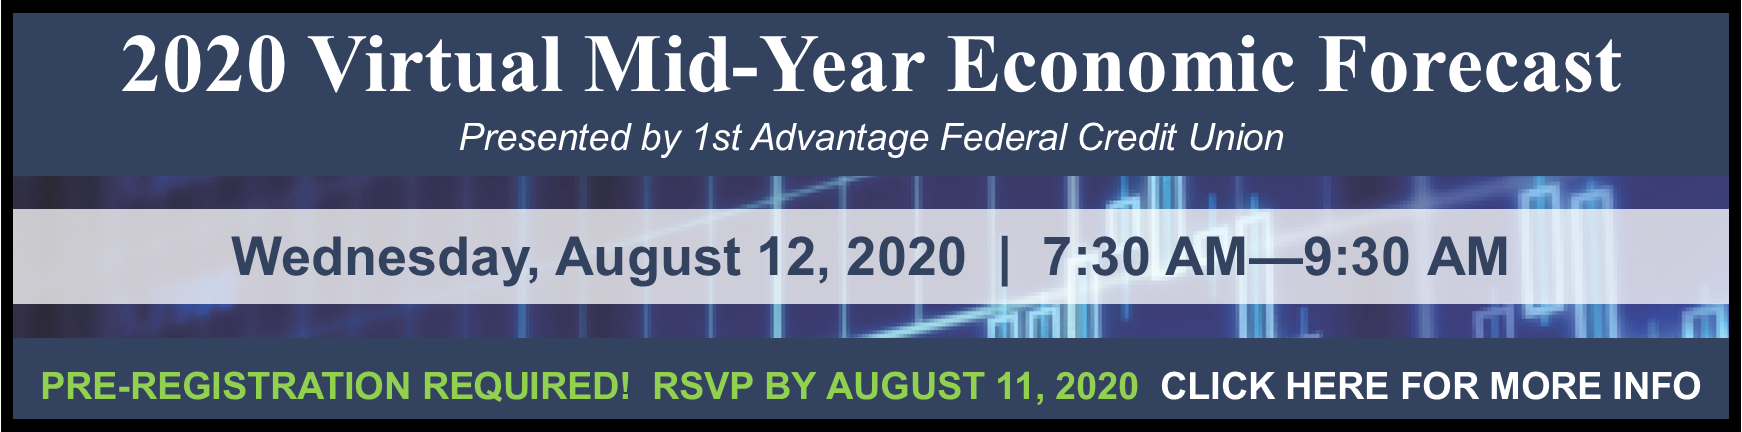 2020-0812-Virtual-Mid-Year-Economic-Forecast-(BANNER).png